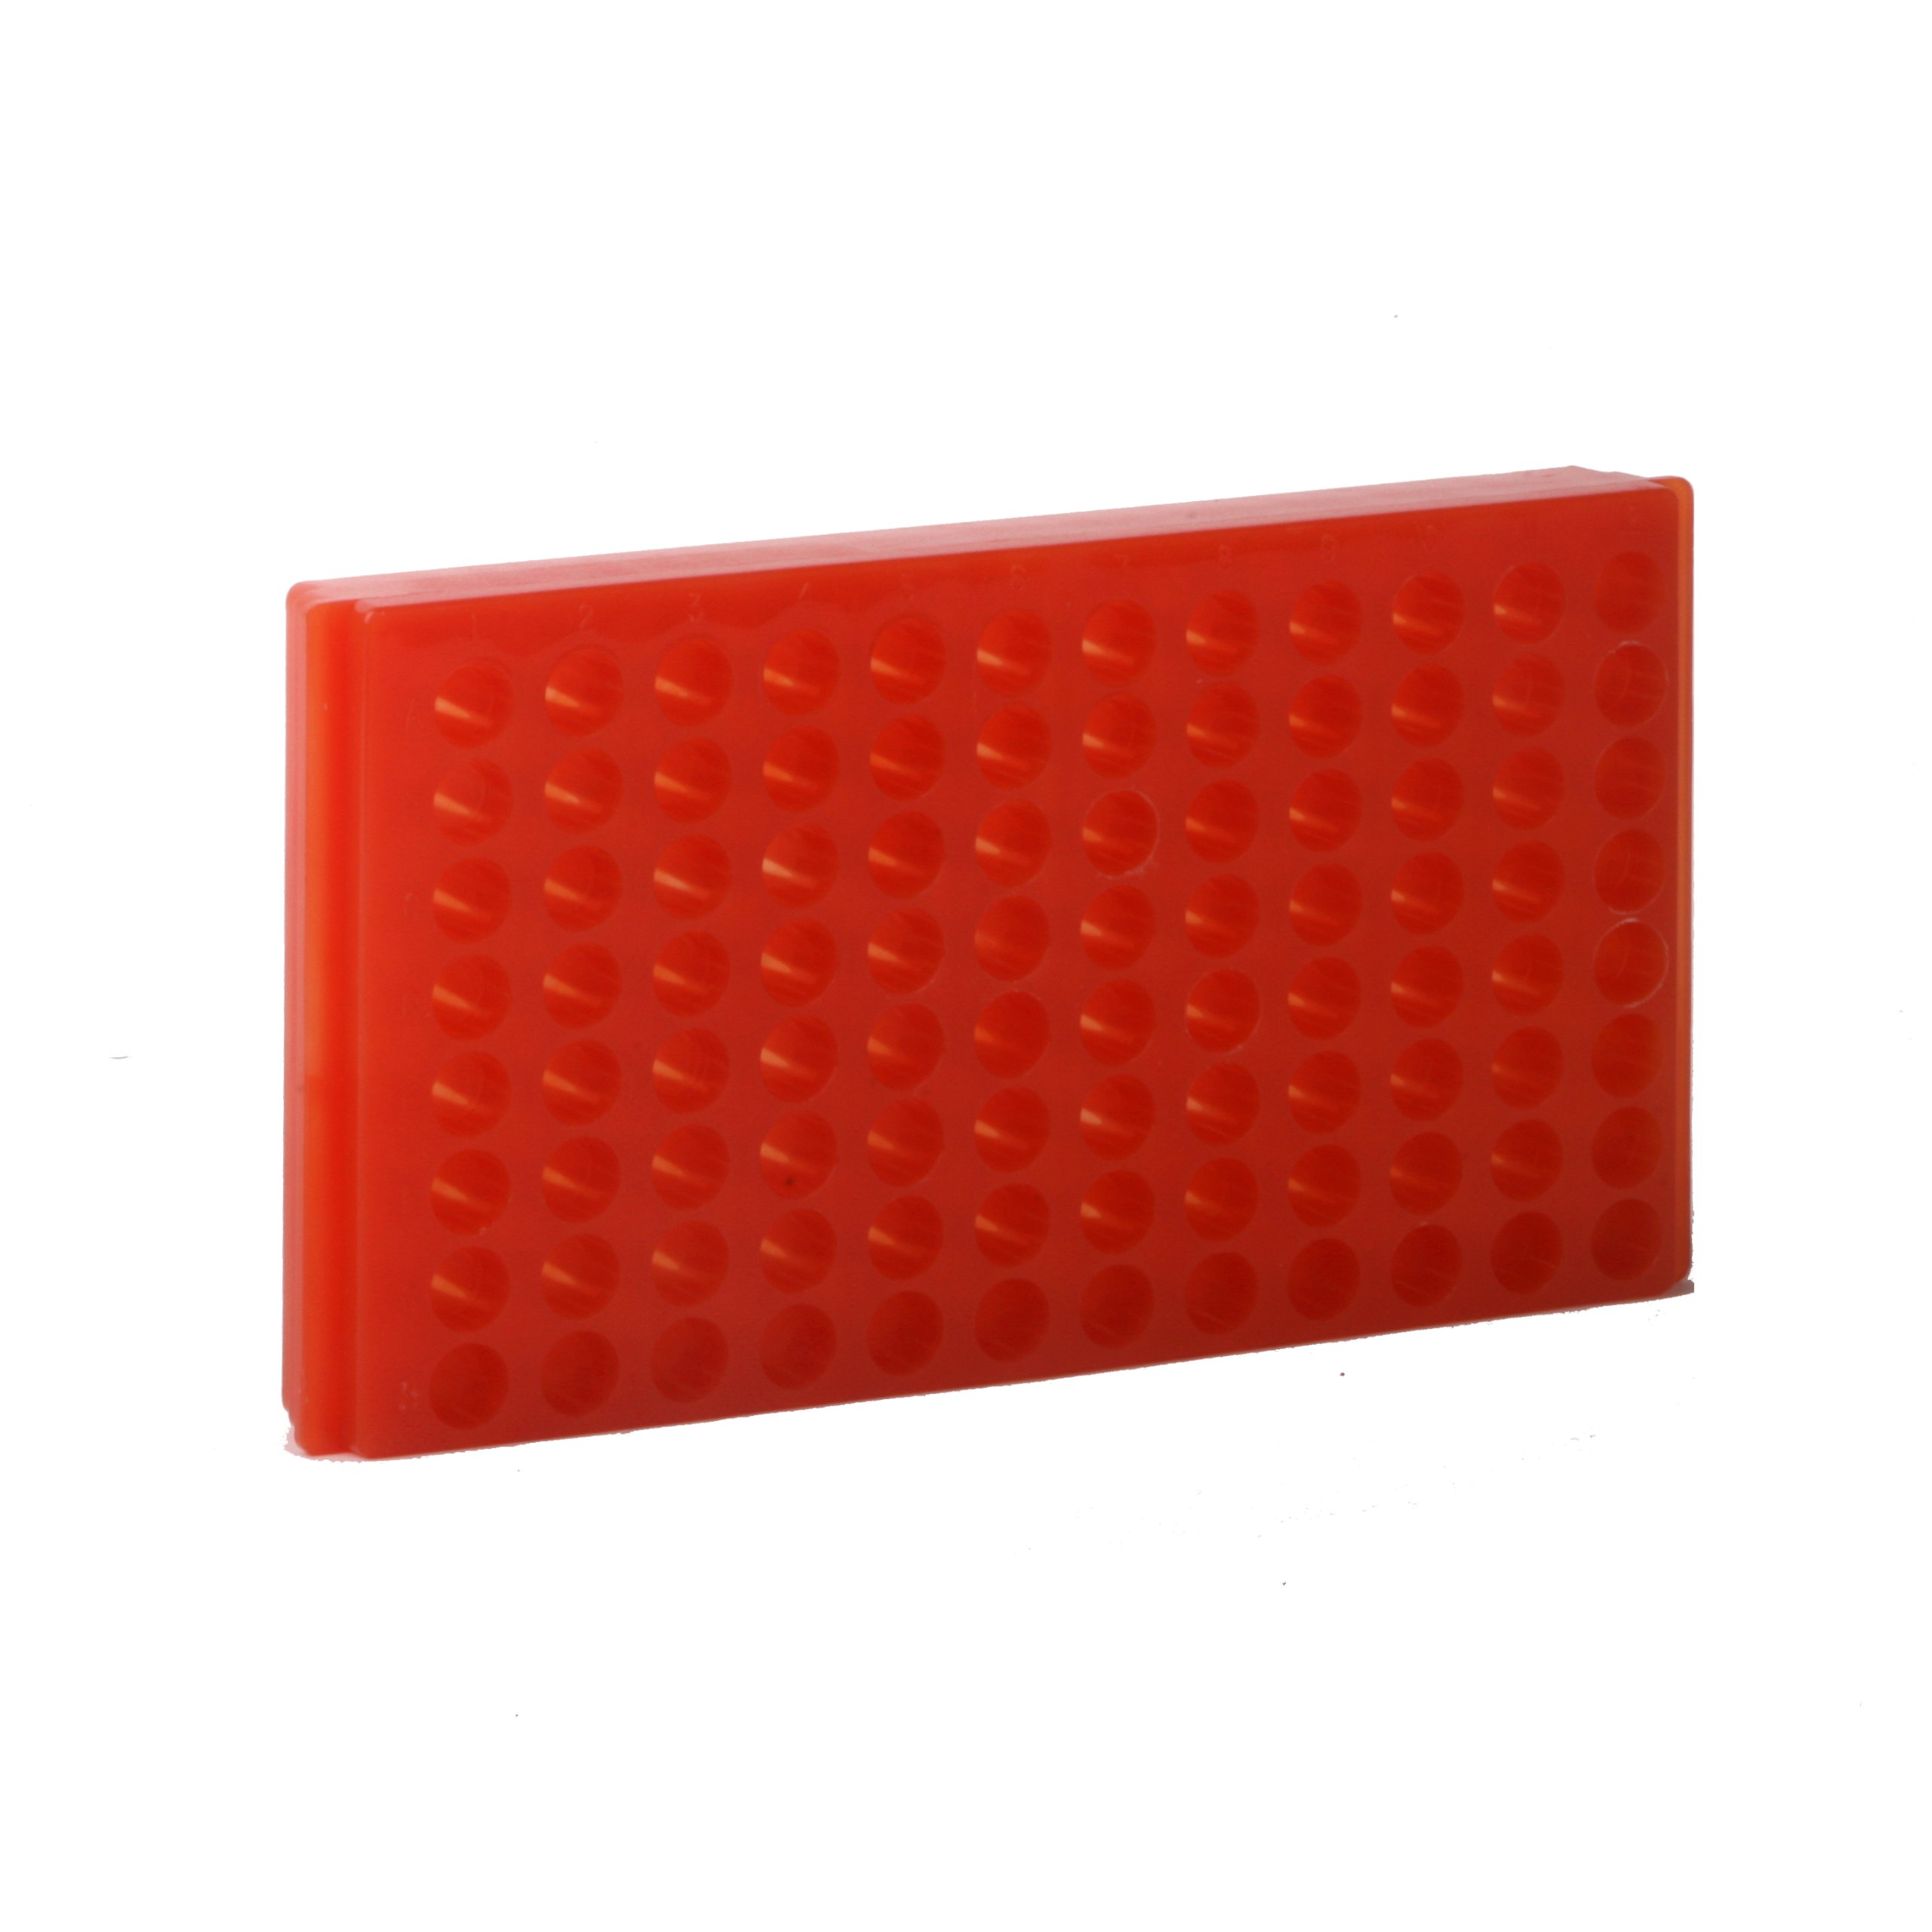 Bio Plas 0094 Orange Polypropylene Reversible 1.5mL and 2.0mL Microcentrifuge Tube Rack, 96 Places (Pack of 5)